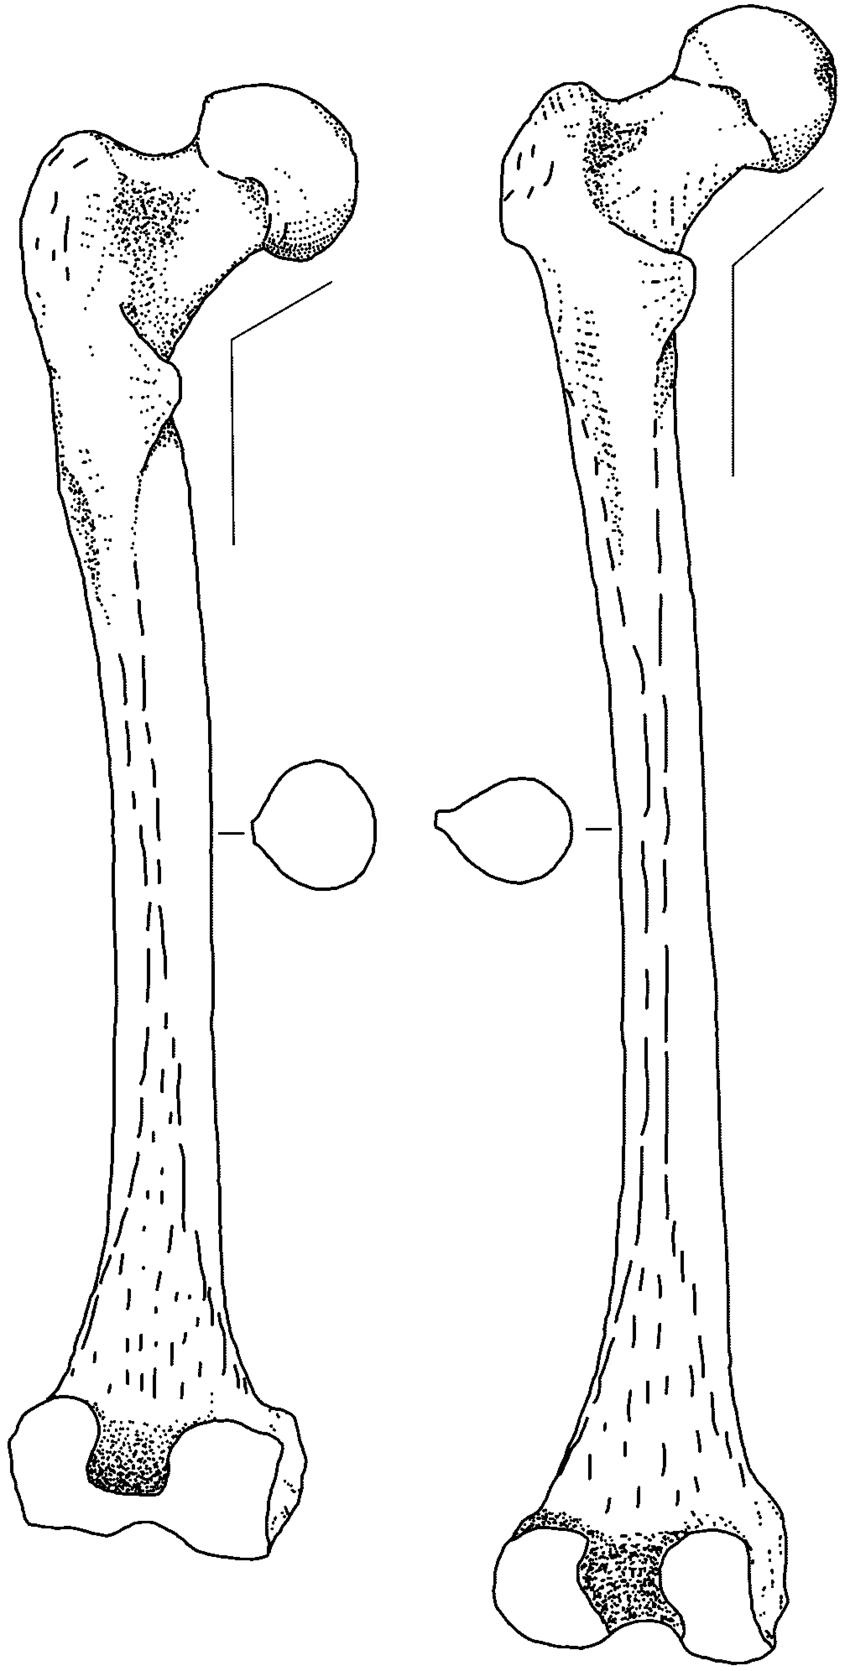 medium resolution of distinctive features of the neandertal femur left the neandertal 1 download scientific diagram